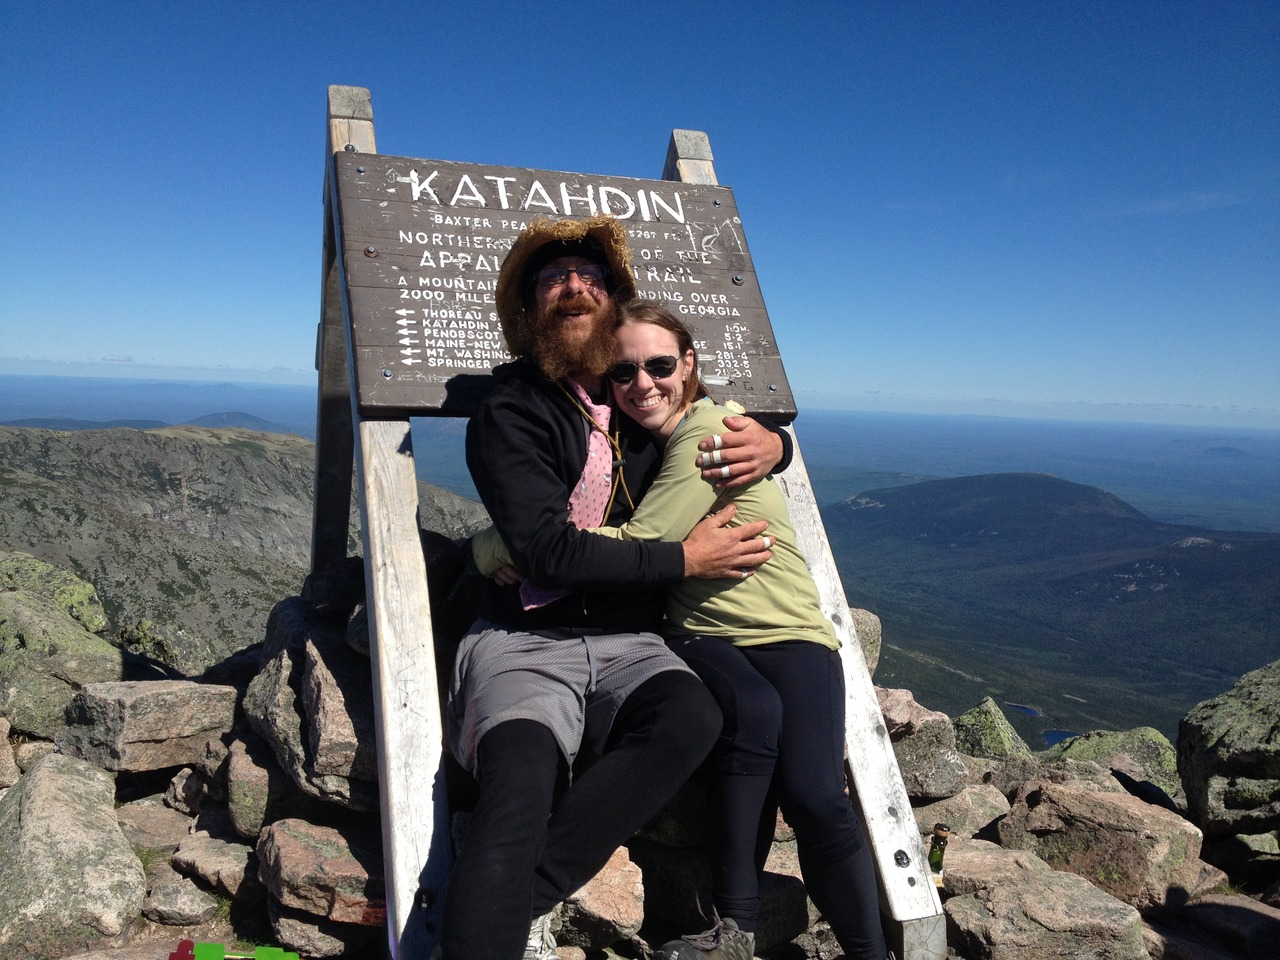 Here we are! We summited Mt. Katahdin on 9-11-12 at 11:00 a.m. after waiting for six days.  The 11th is Nokey's birthday and we wanted to wait for that day.  After taking about 45 zeros on the trail, we finished the trail in 5.5 months for me and six months, 1 day for Nokey.  I've been working on getting my videos posted, but the formatting issues are giving me problems.  I'll be doing some blogging and photo updates in the next several days.   I wanted to thank everyone who supported me on my thru hike, friends, family, and co-workers alike.  It meant a lot to me to get into town and have emails, texts, and voicemails from so many of you consistently throughout my trip.  There were times on the trail when I wanted nothing more than to just quit and come home.  There were other times I'd be angry with myself for ever doubting my abilities.  I've grown and changed a lot as a person in the past few months and I'm already looking forward to my next adventure, wherever it may take me!